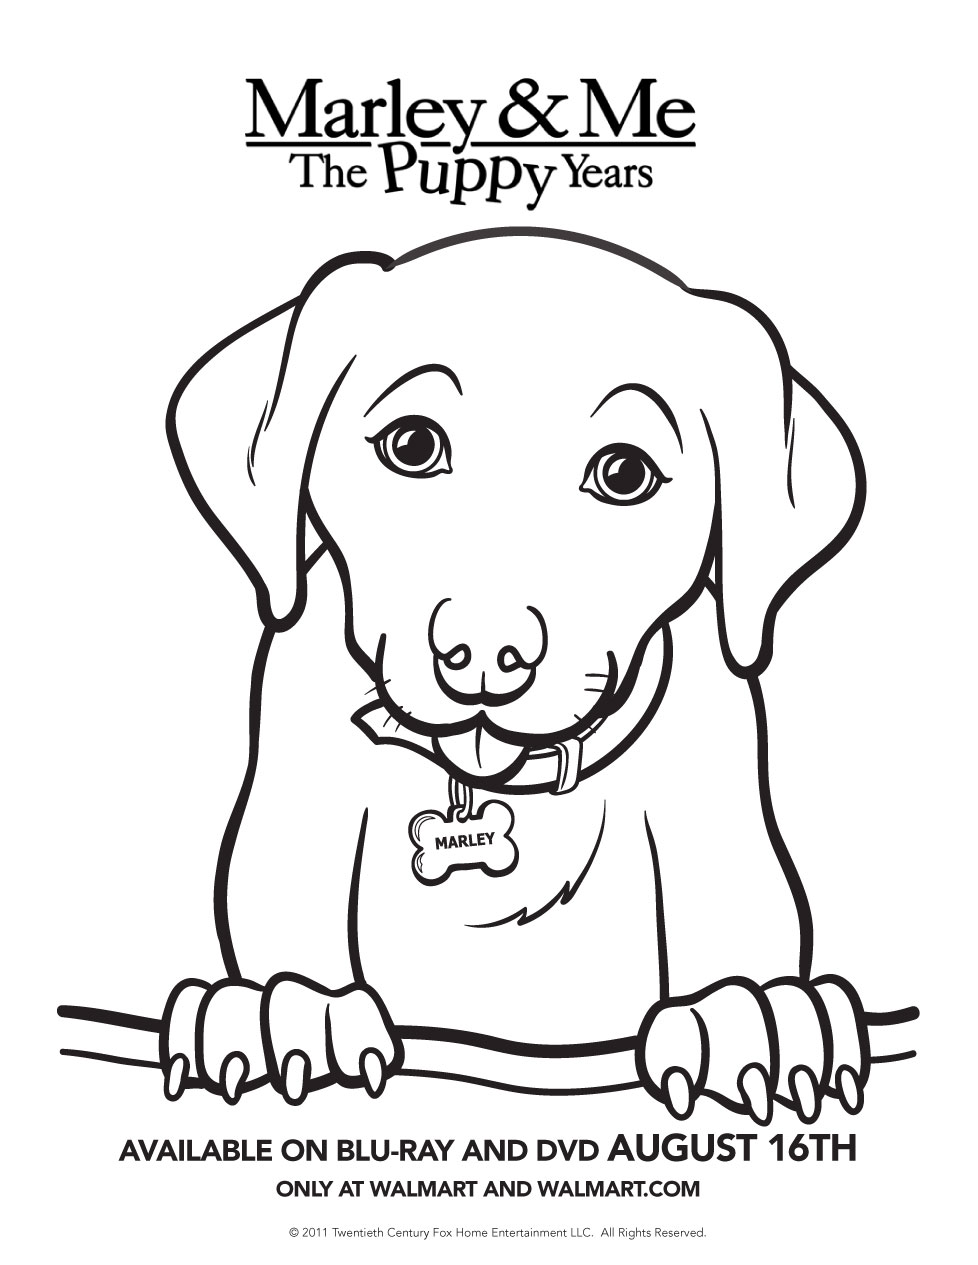 Marley & Me: The Puppy Years Printable Activity Sheets, Puzzles and ...